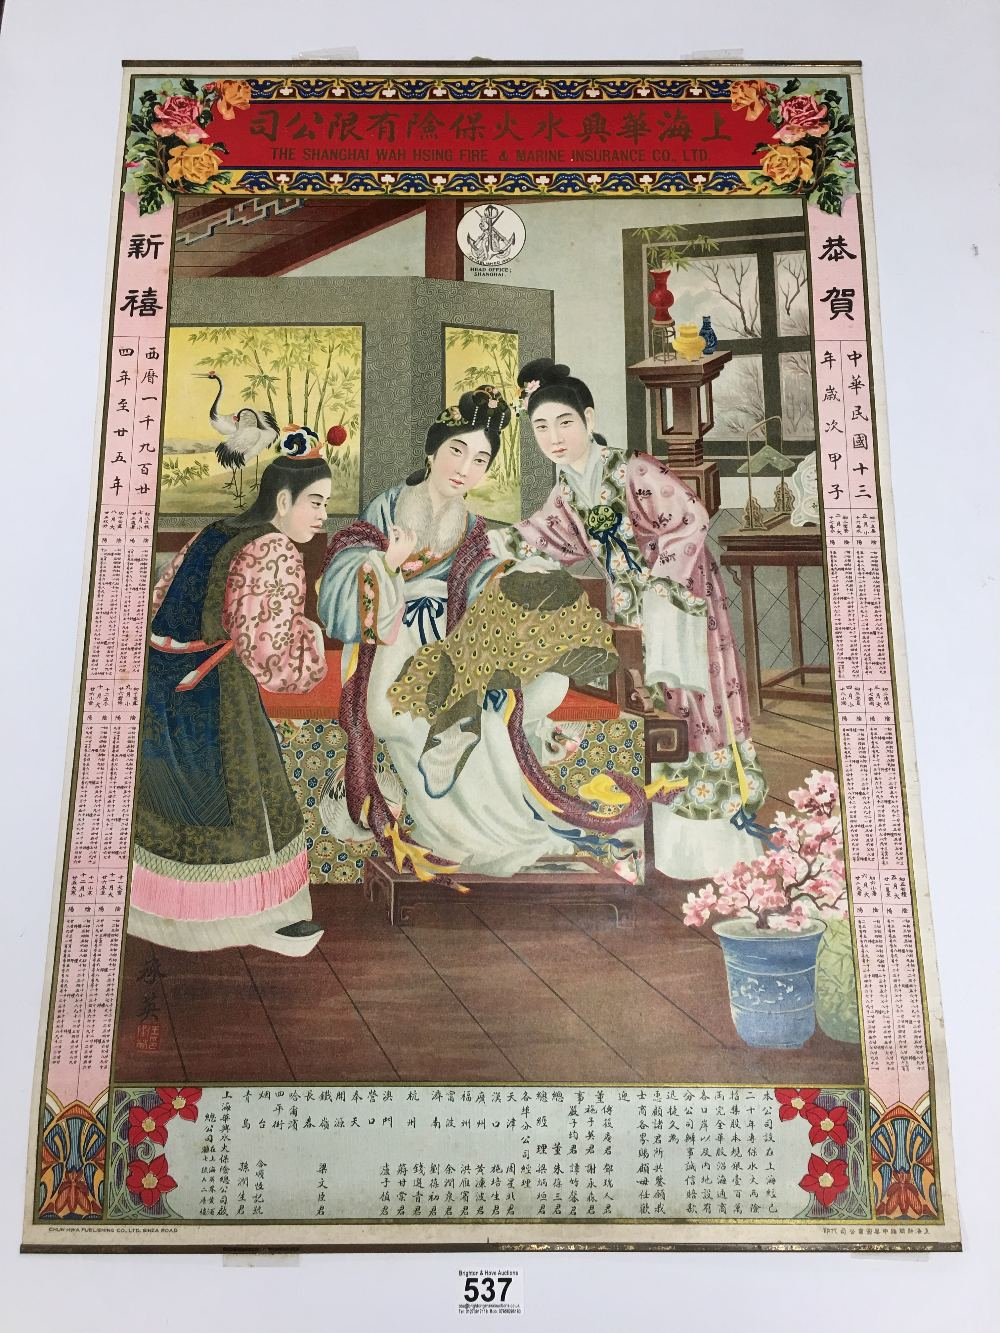 Lot 537 - 1924 A POSTER SIZE CHINESE CALENDAR FROM THE SHANGHAI WAH HSING FIRE AND MARINE INSURANCE CO LTD